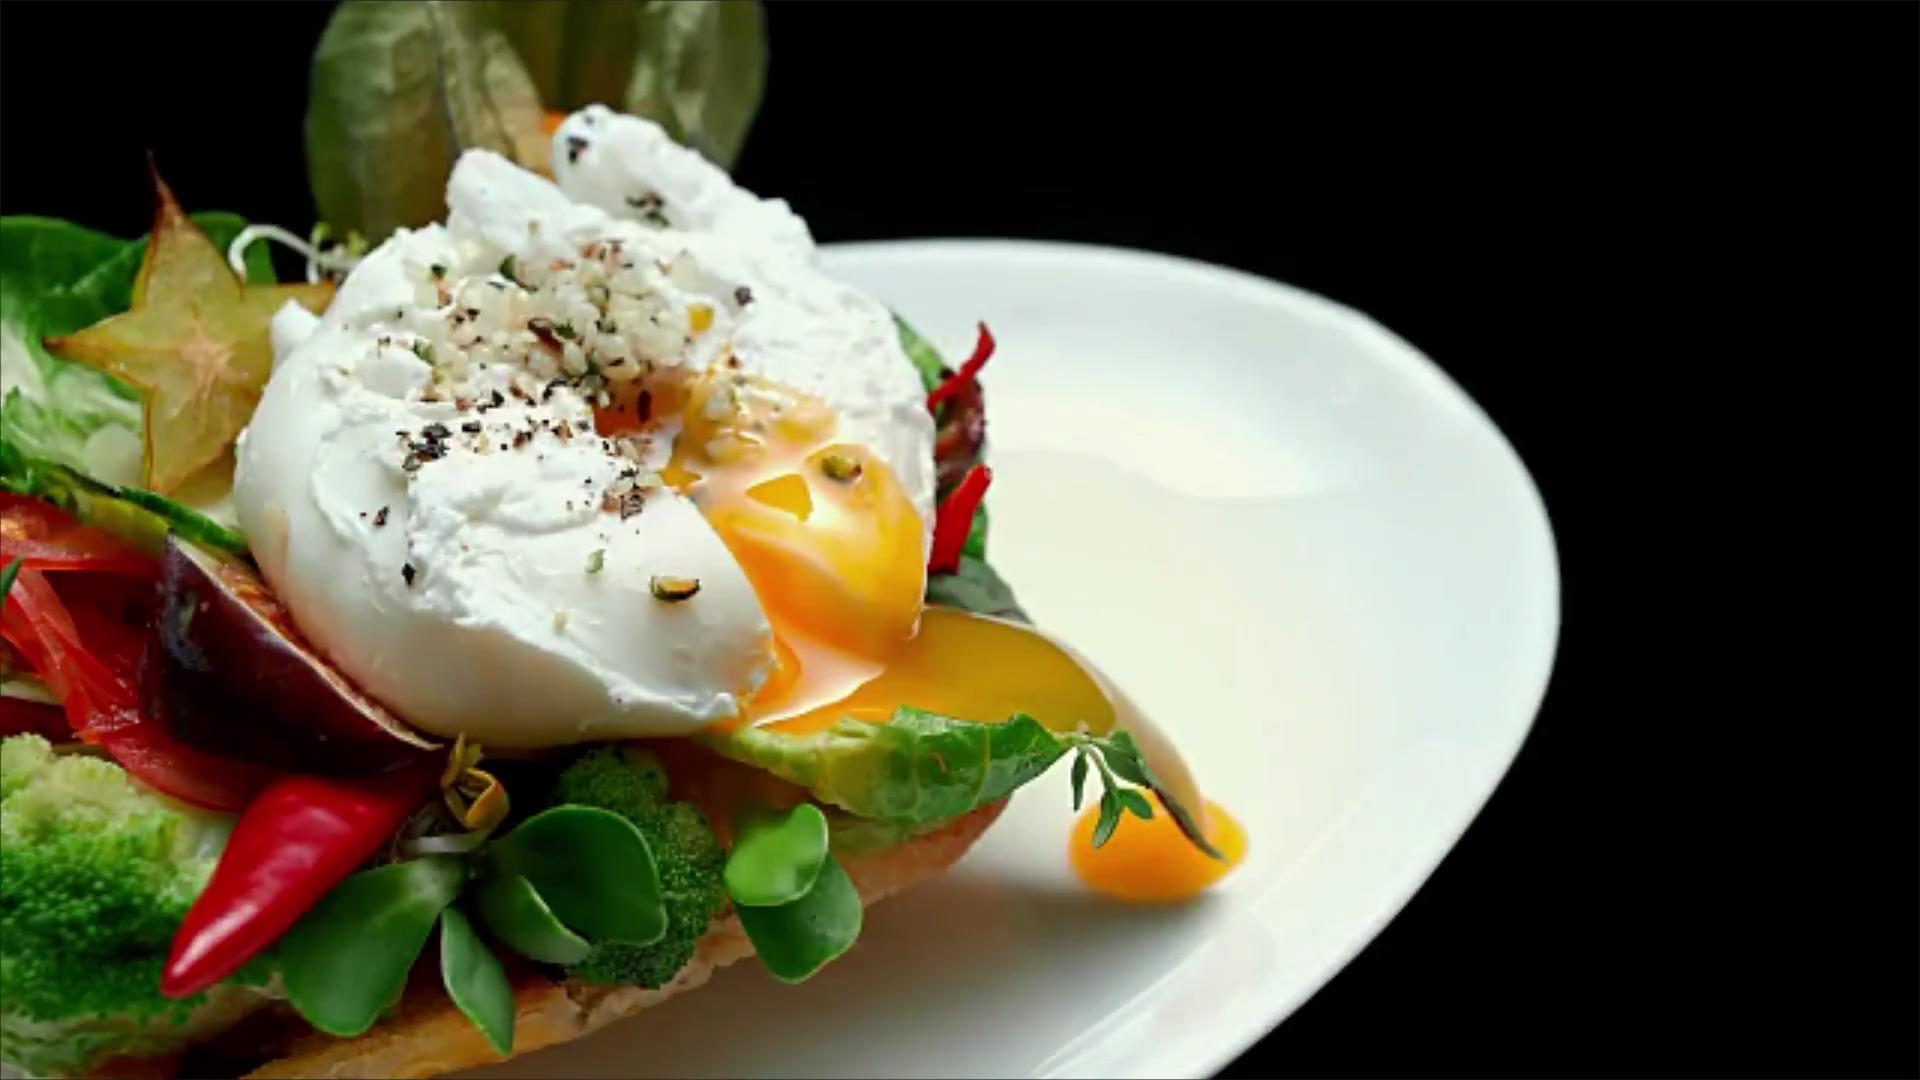 WATCH: Forget Vinegar, This Is the One Thing You Need for Perfect Poached Eggs